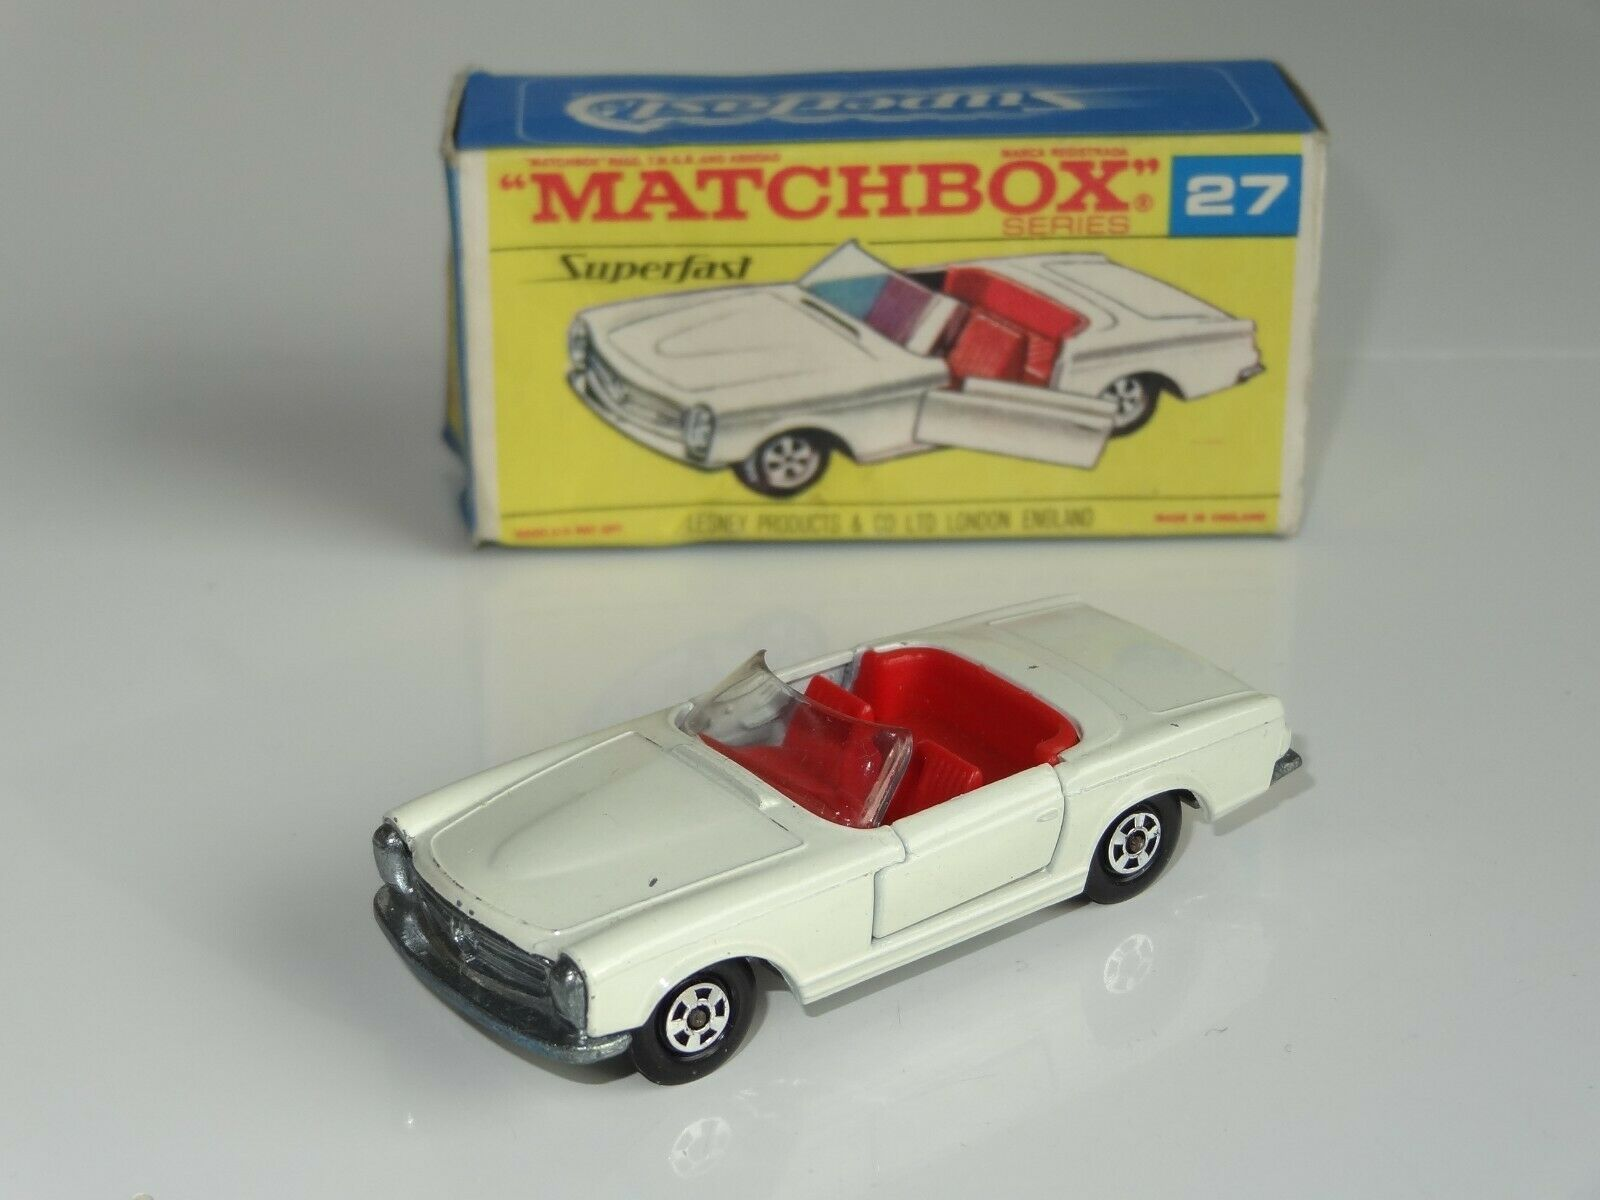 (B) Matchbox Lesney Superfast MERCEDES 230 SL - 27 RARE F box